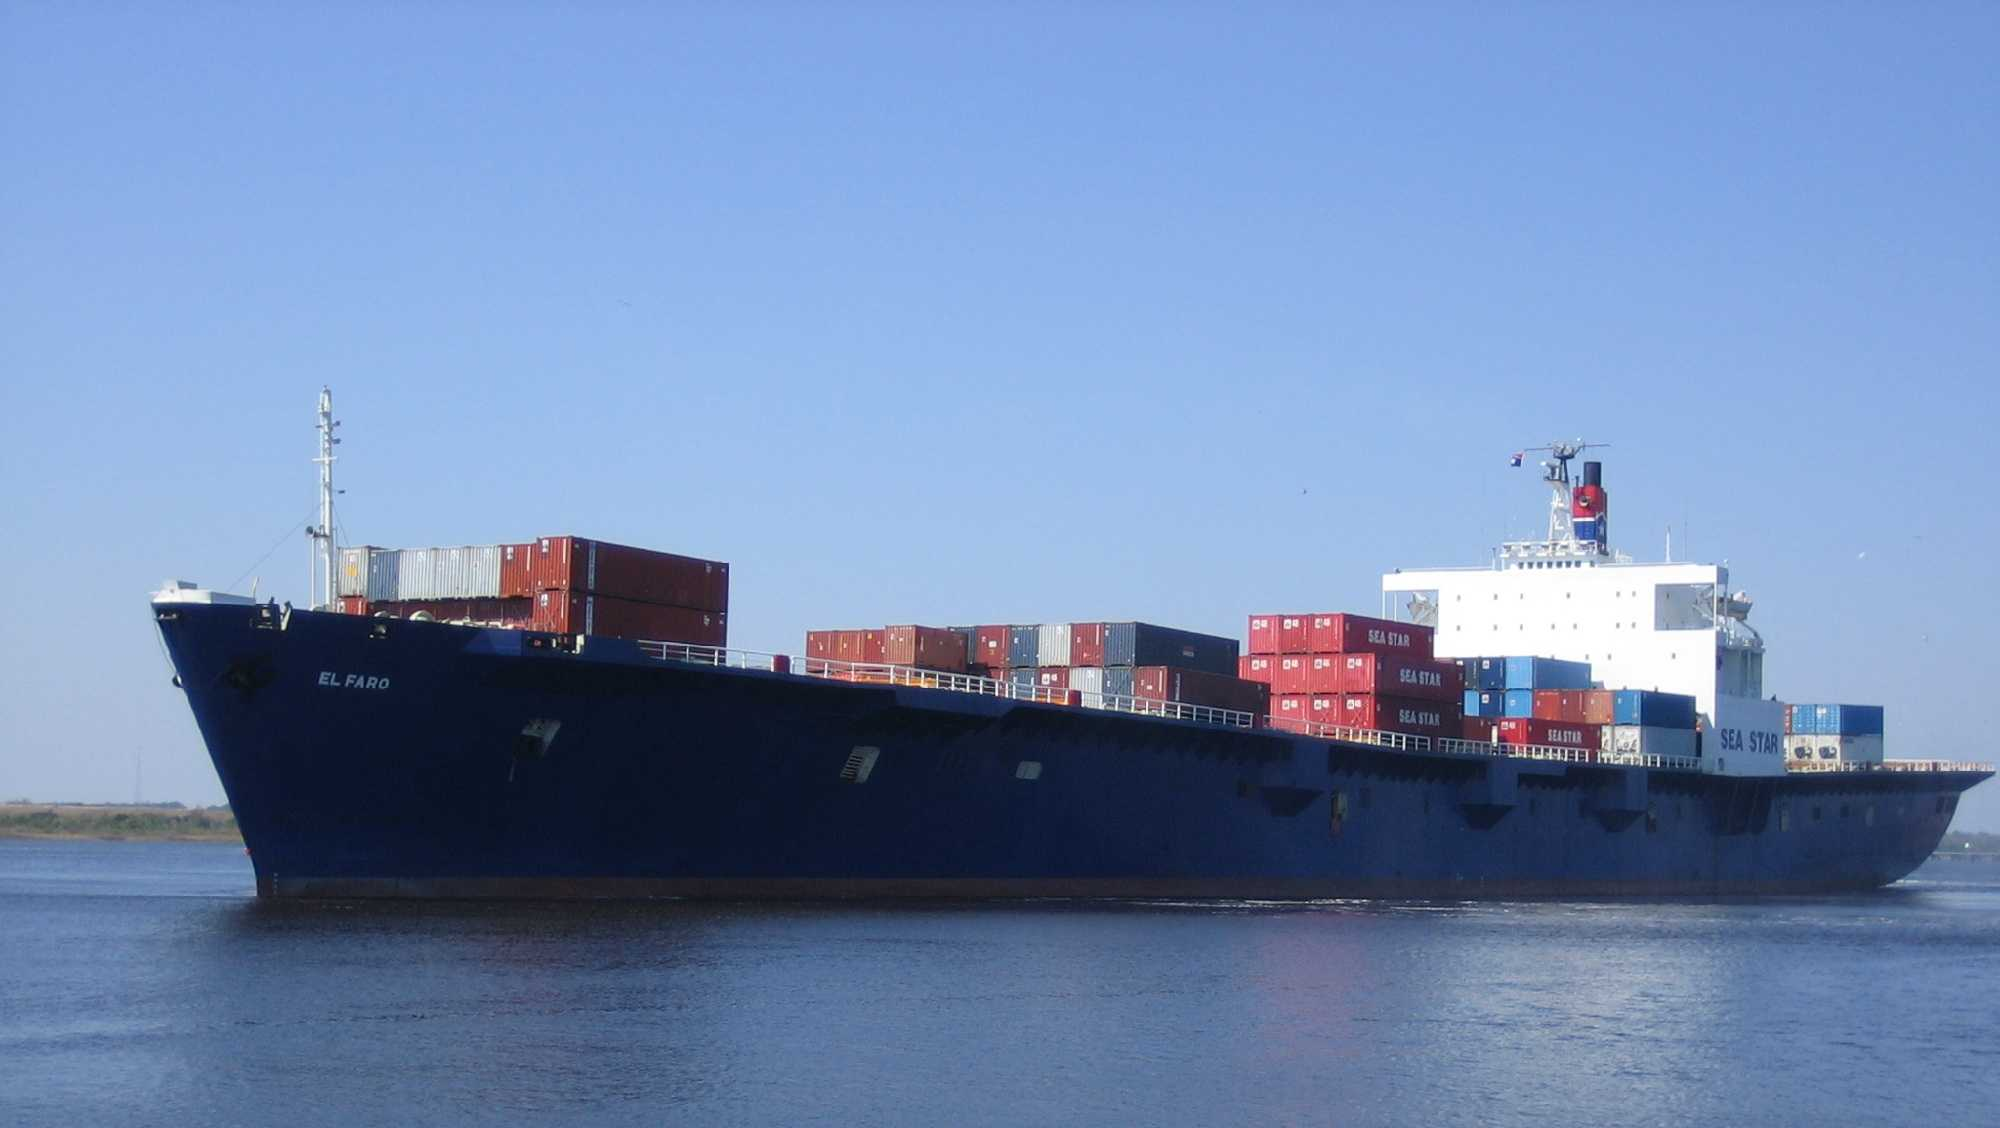 Tuesday Sept. 29: El Faro leaves Jacksonville, Florida, headed to Puerto Rico with supplies.